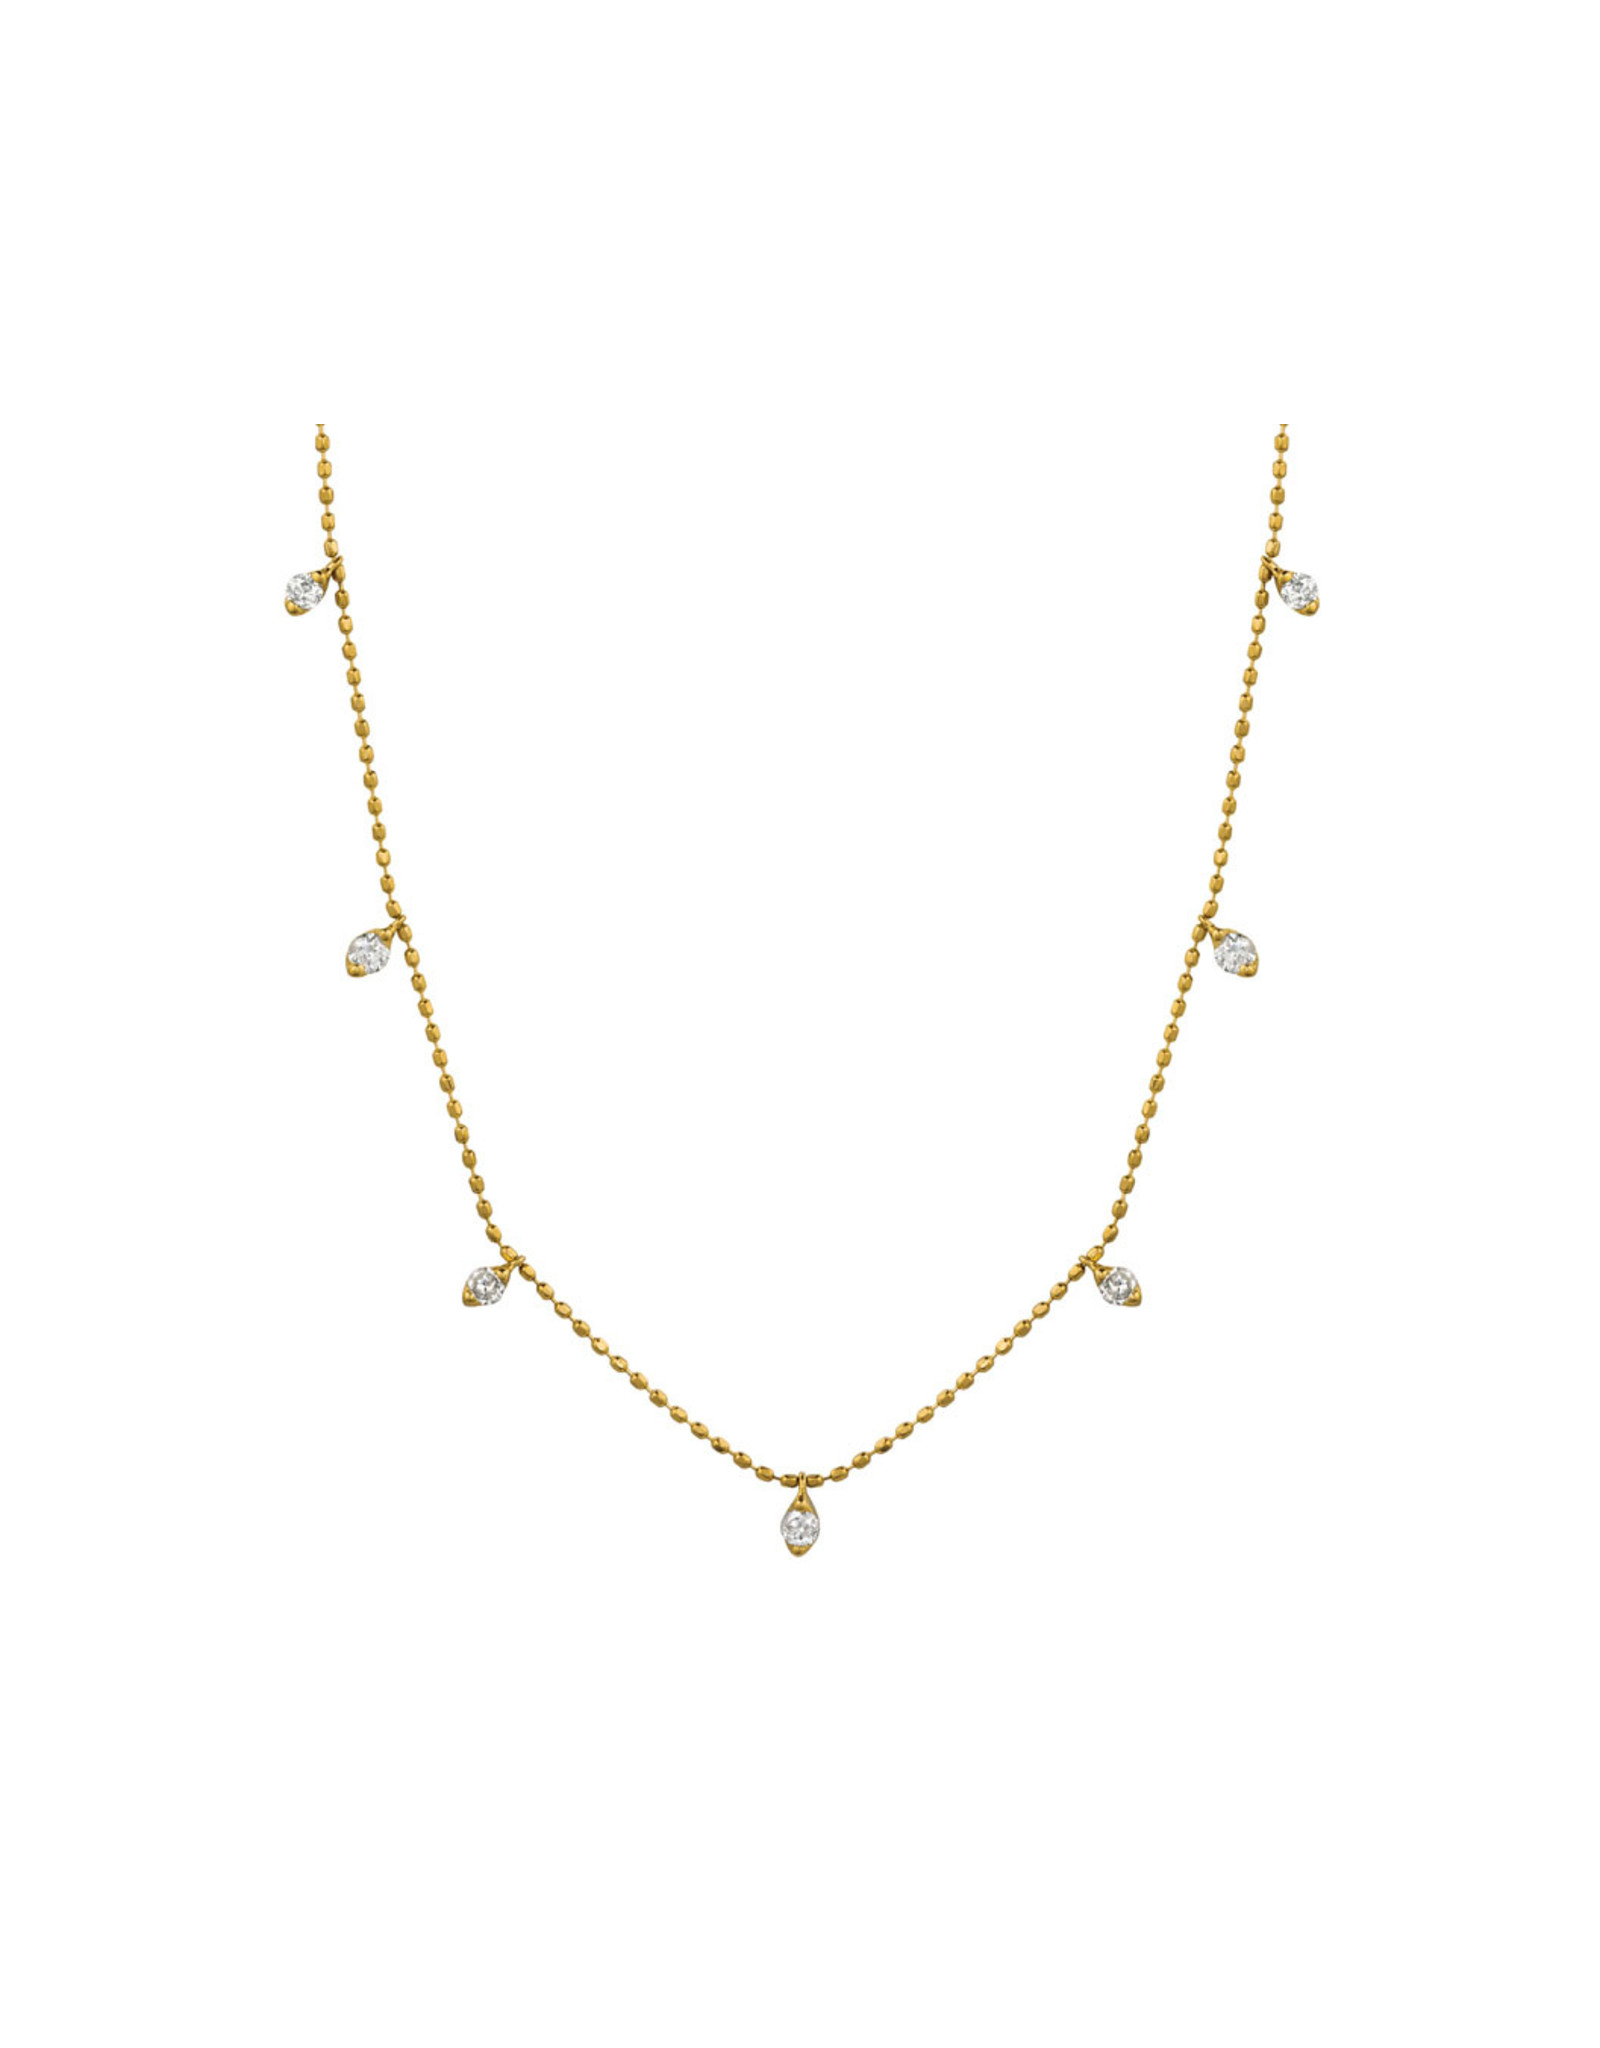 14K Yellow Gold Dainty Diamond Dangle Adjustable Necklace, D:  0.50ct